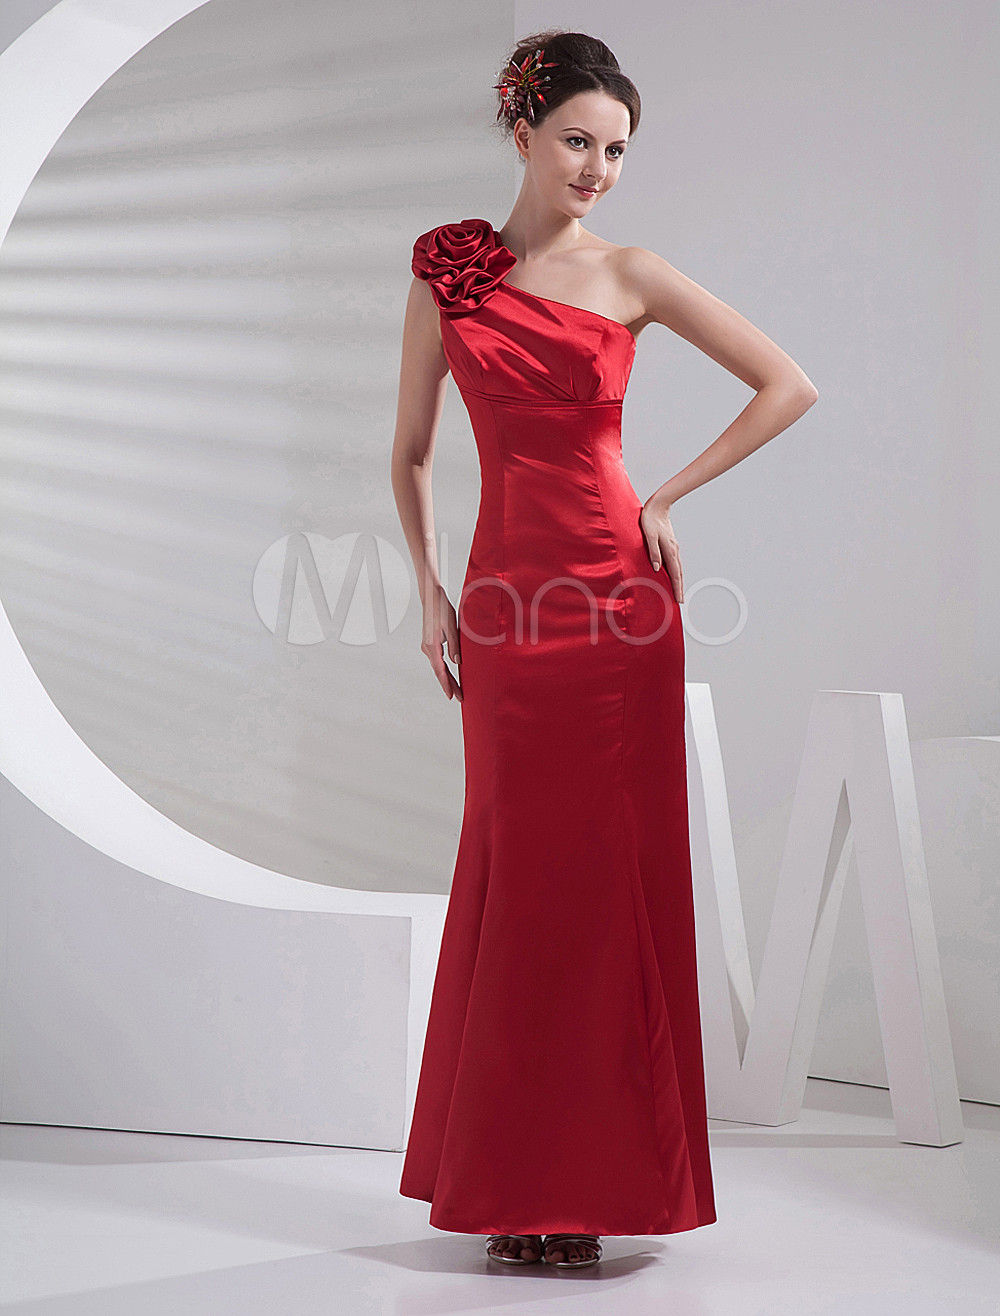 Mermaid One-Shoulder Flower Burgundy Elastic Woven Satin Bridesmaid Dress